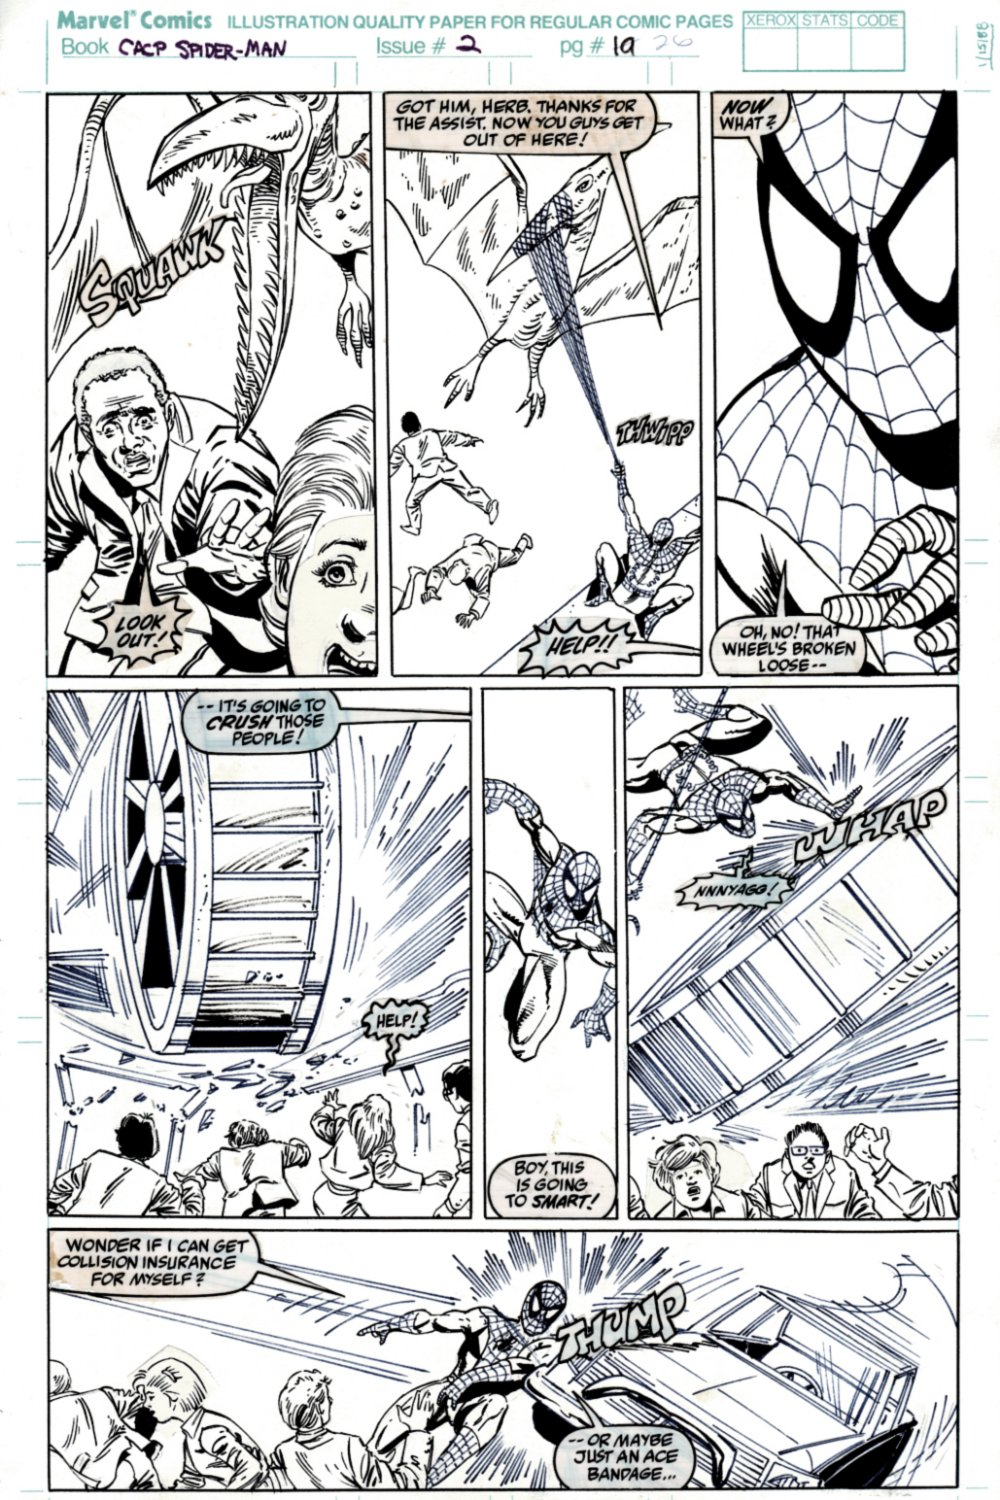 Amazing Spider-Man: Double Trouble #2 p 19 (SOLD LIVE ON 'DUELING DEALERS OF COMIC ART' EPISODE #38 PODCAST ON 9-29-2021)